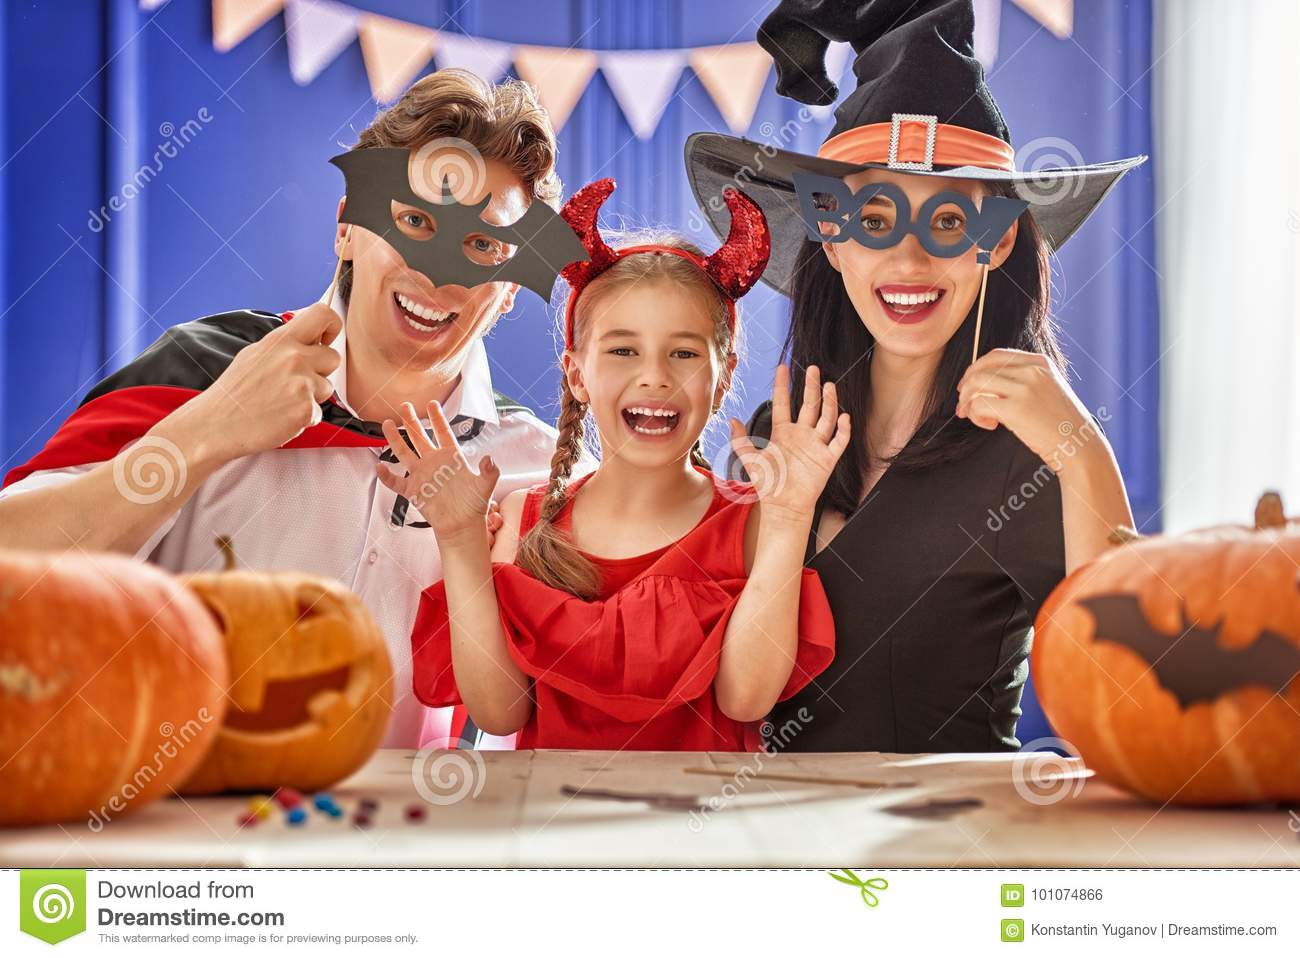 Discussion on this topic: How to Celebrate Halloween as a Teenager, how-to-celebrate-halloween-as-a-teenager/